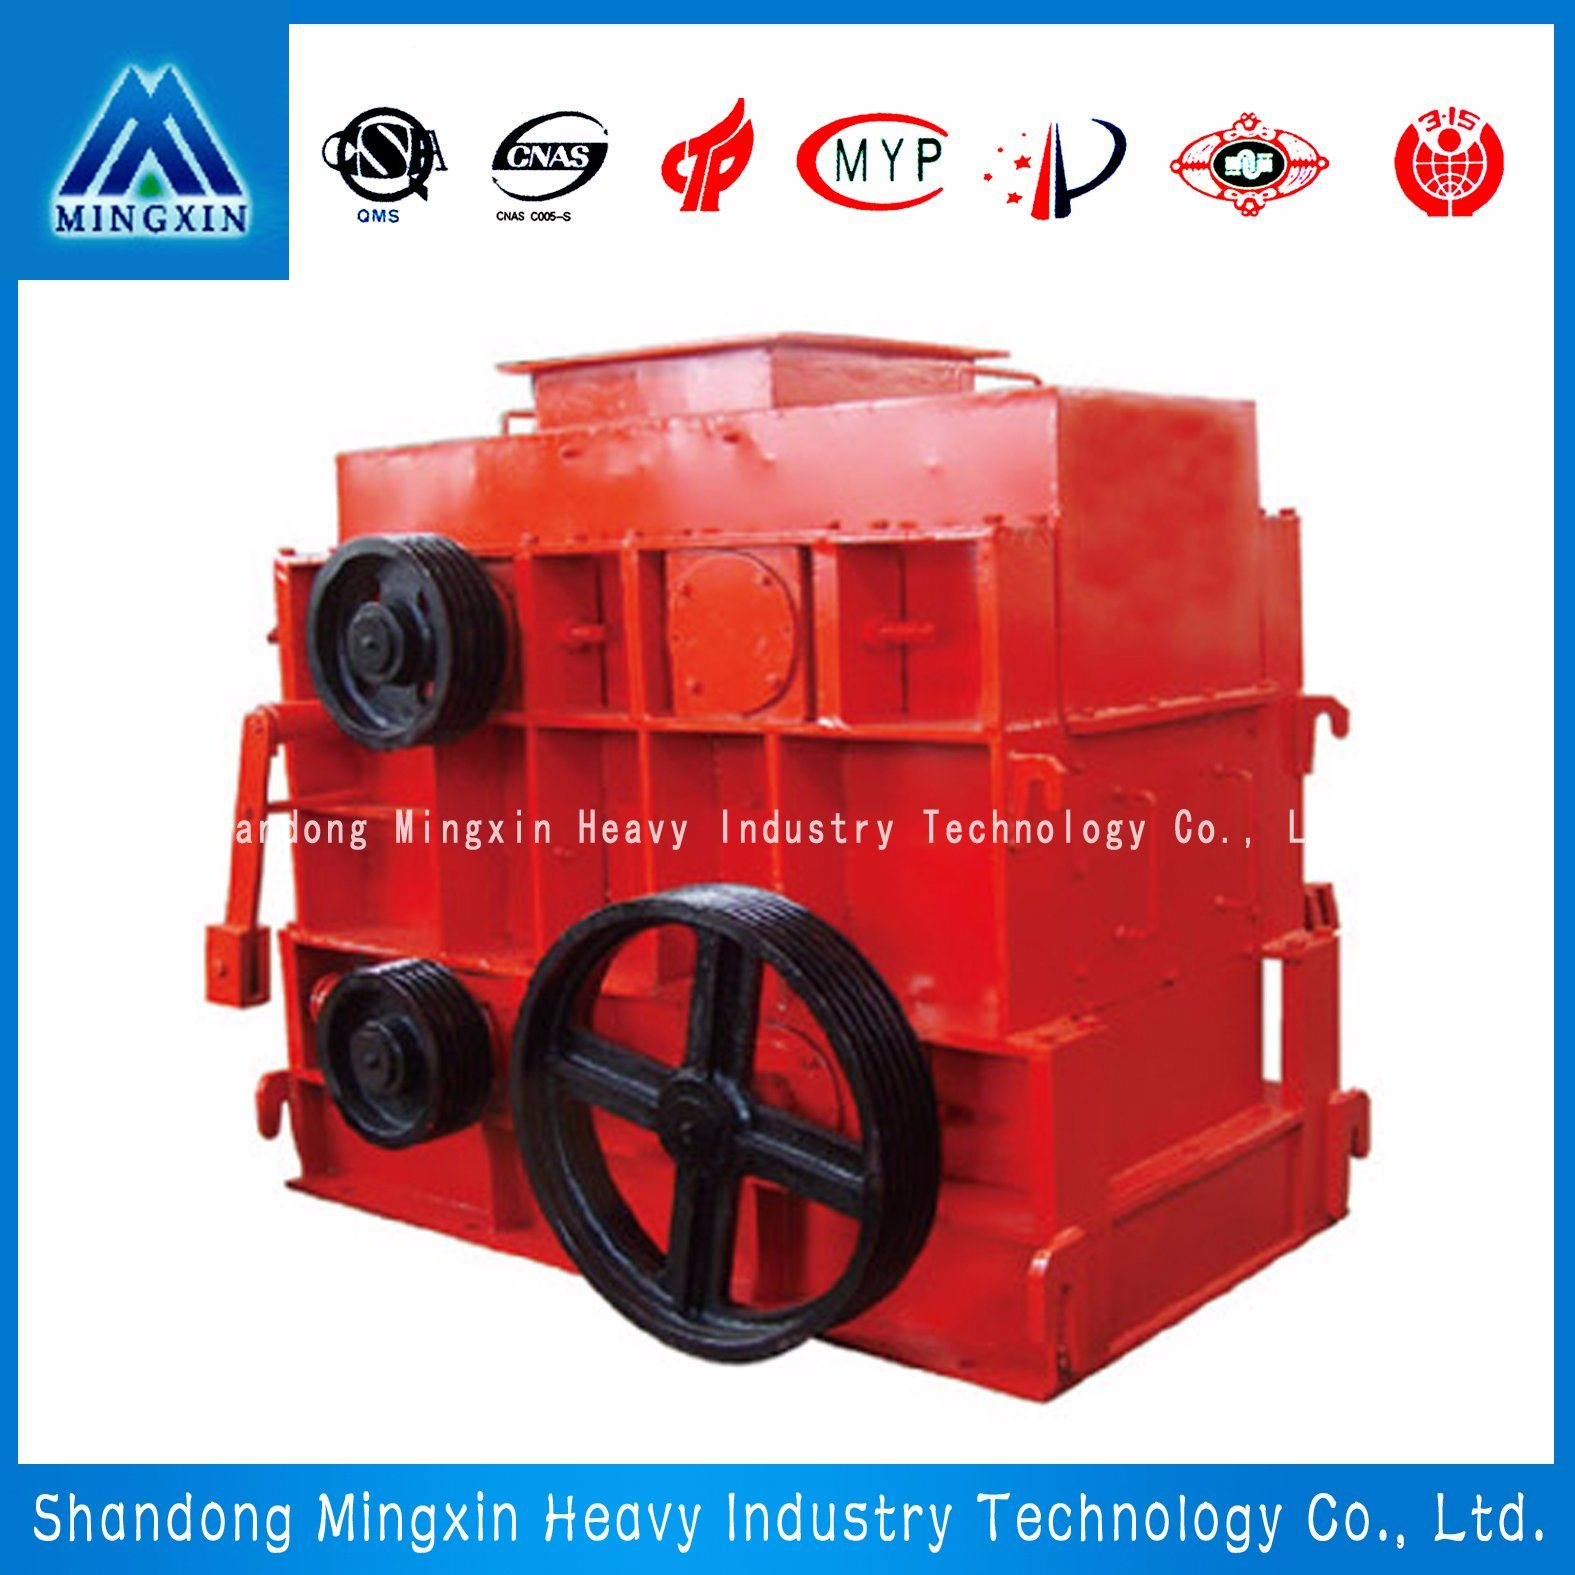 4pg (C) - Four Roll Crusher for Maintenance Costs Low, Crushing Ratio, Good Performance